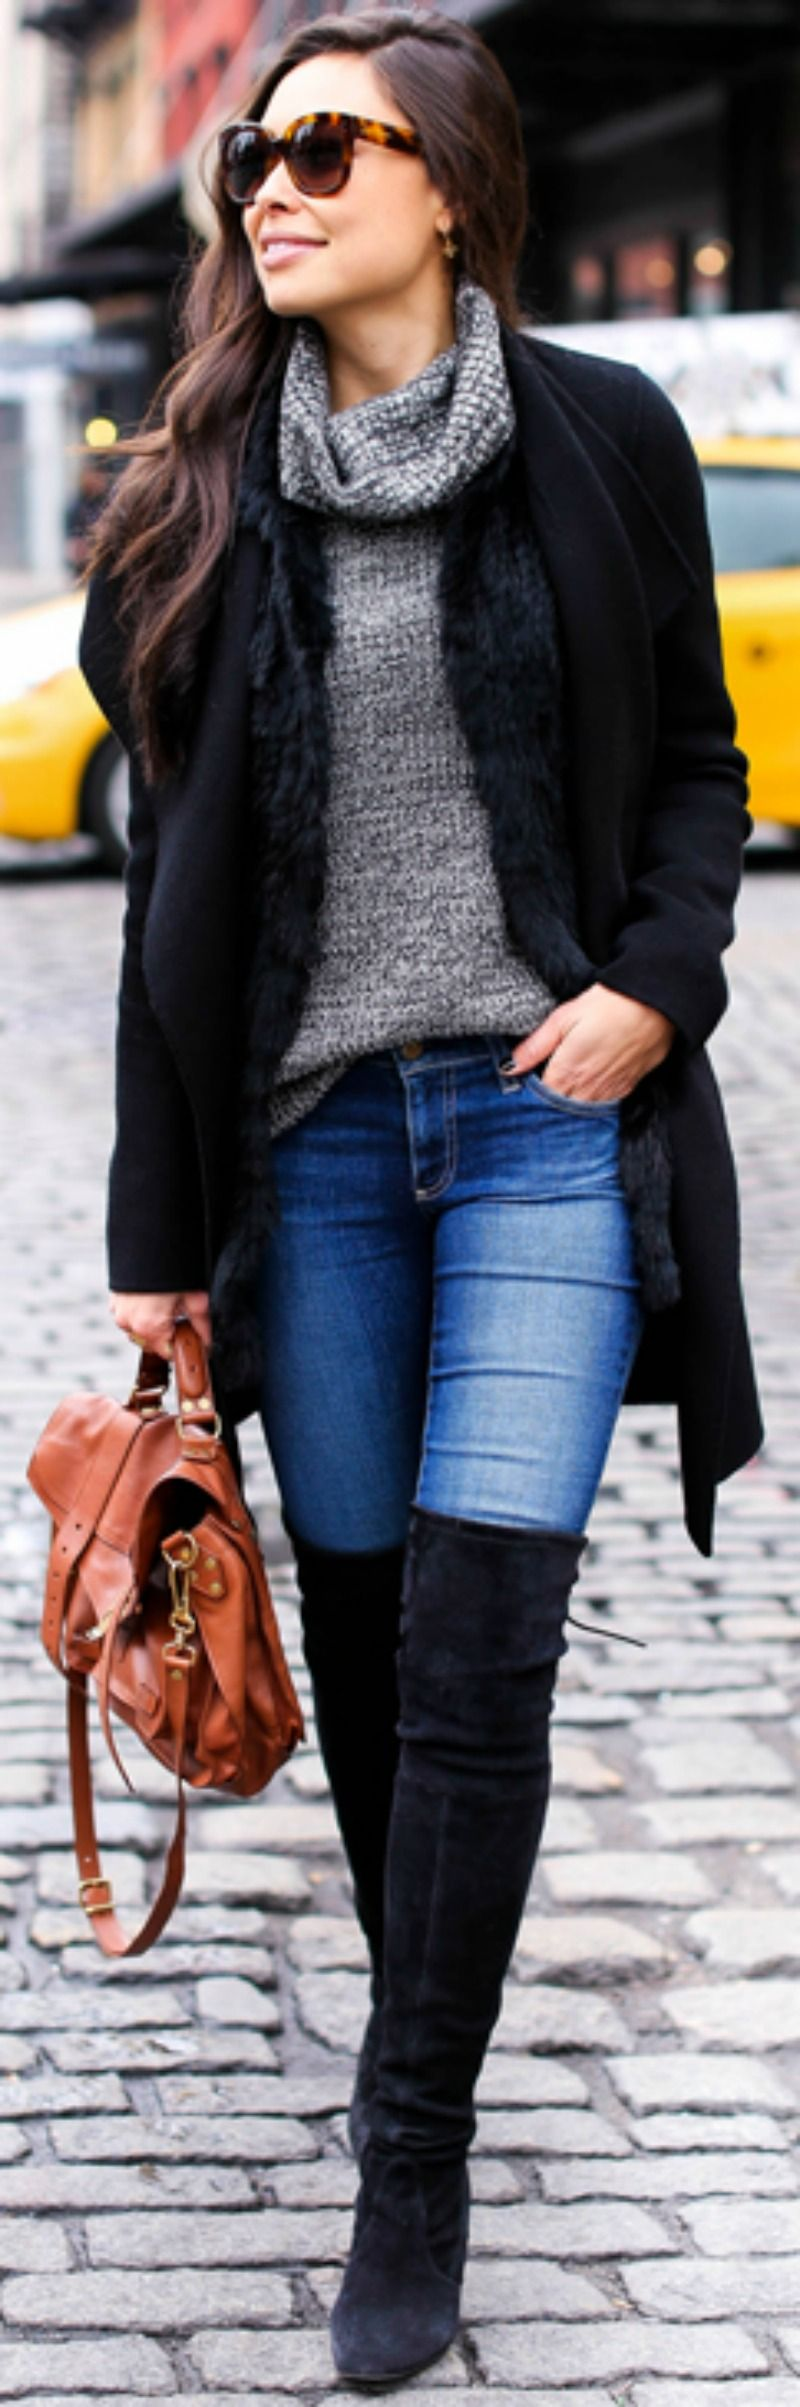 thigh boots knee outfit wear jeans outfits denim winter boot fall shoes length coat ways cute casual sweater joe latest